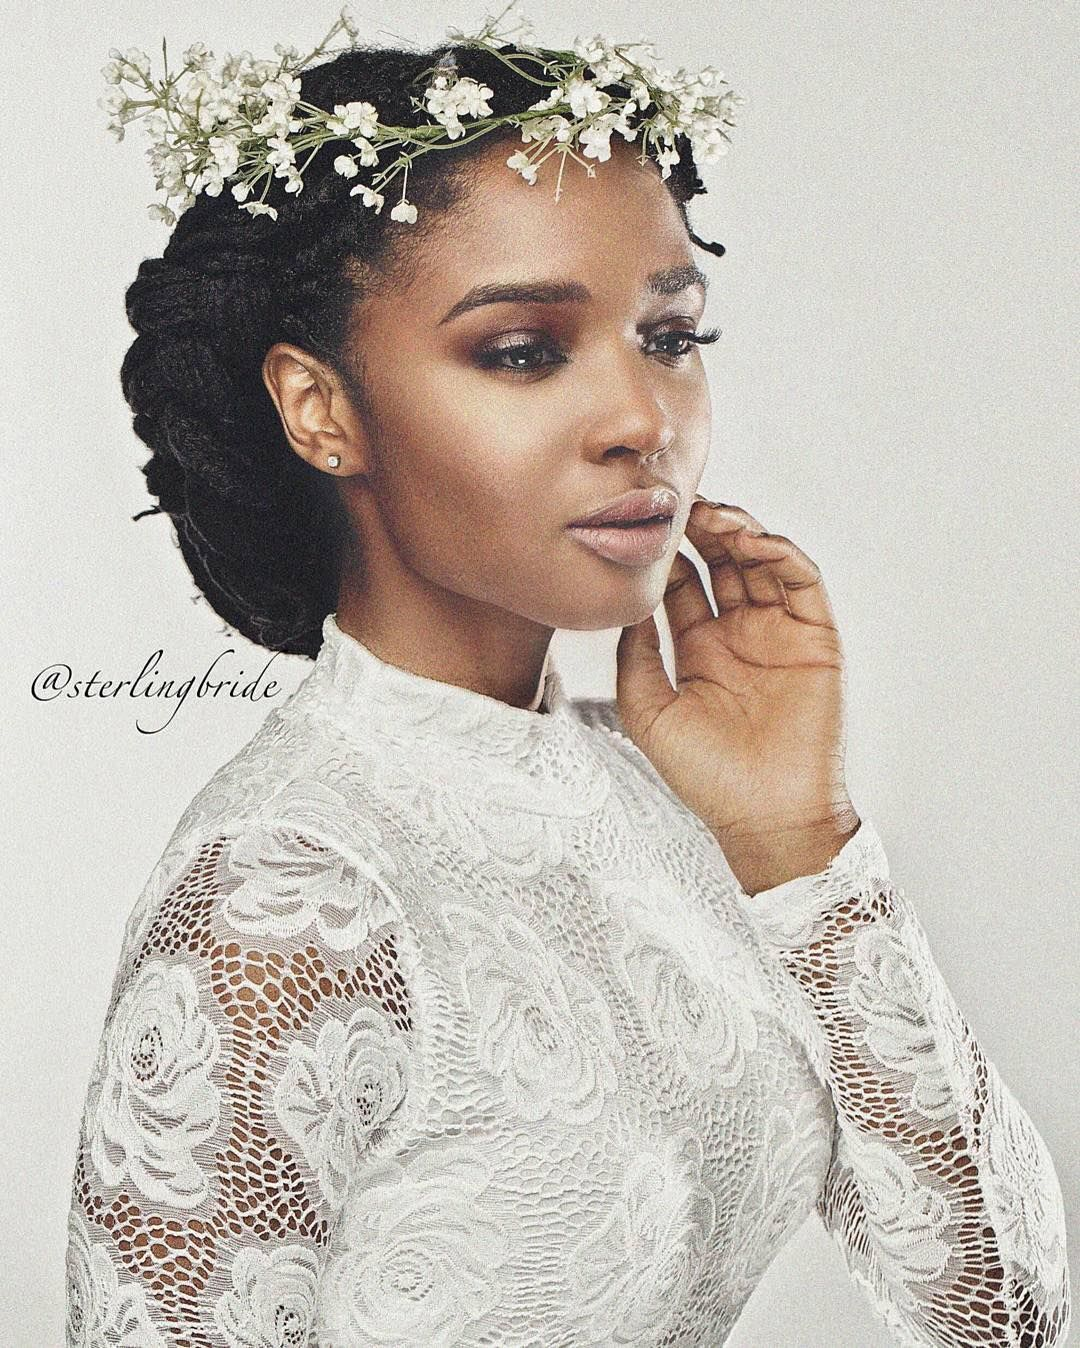 Munaluchi bride a simple flower crown for this beauty photo by munaluchi bride a simple flower crown for this beauty photo by izmirmasajfo Image collections